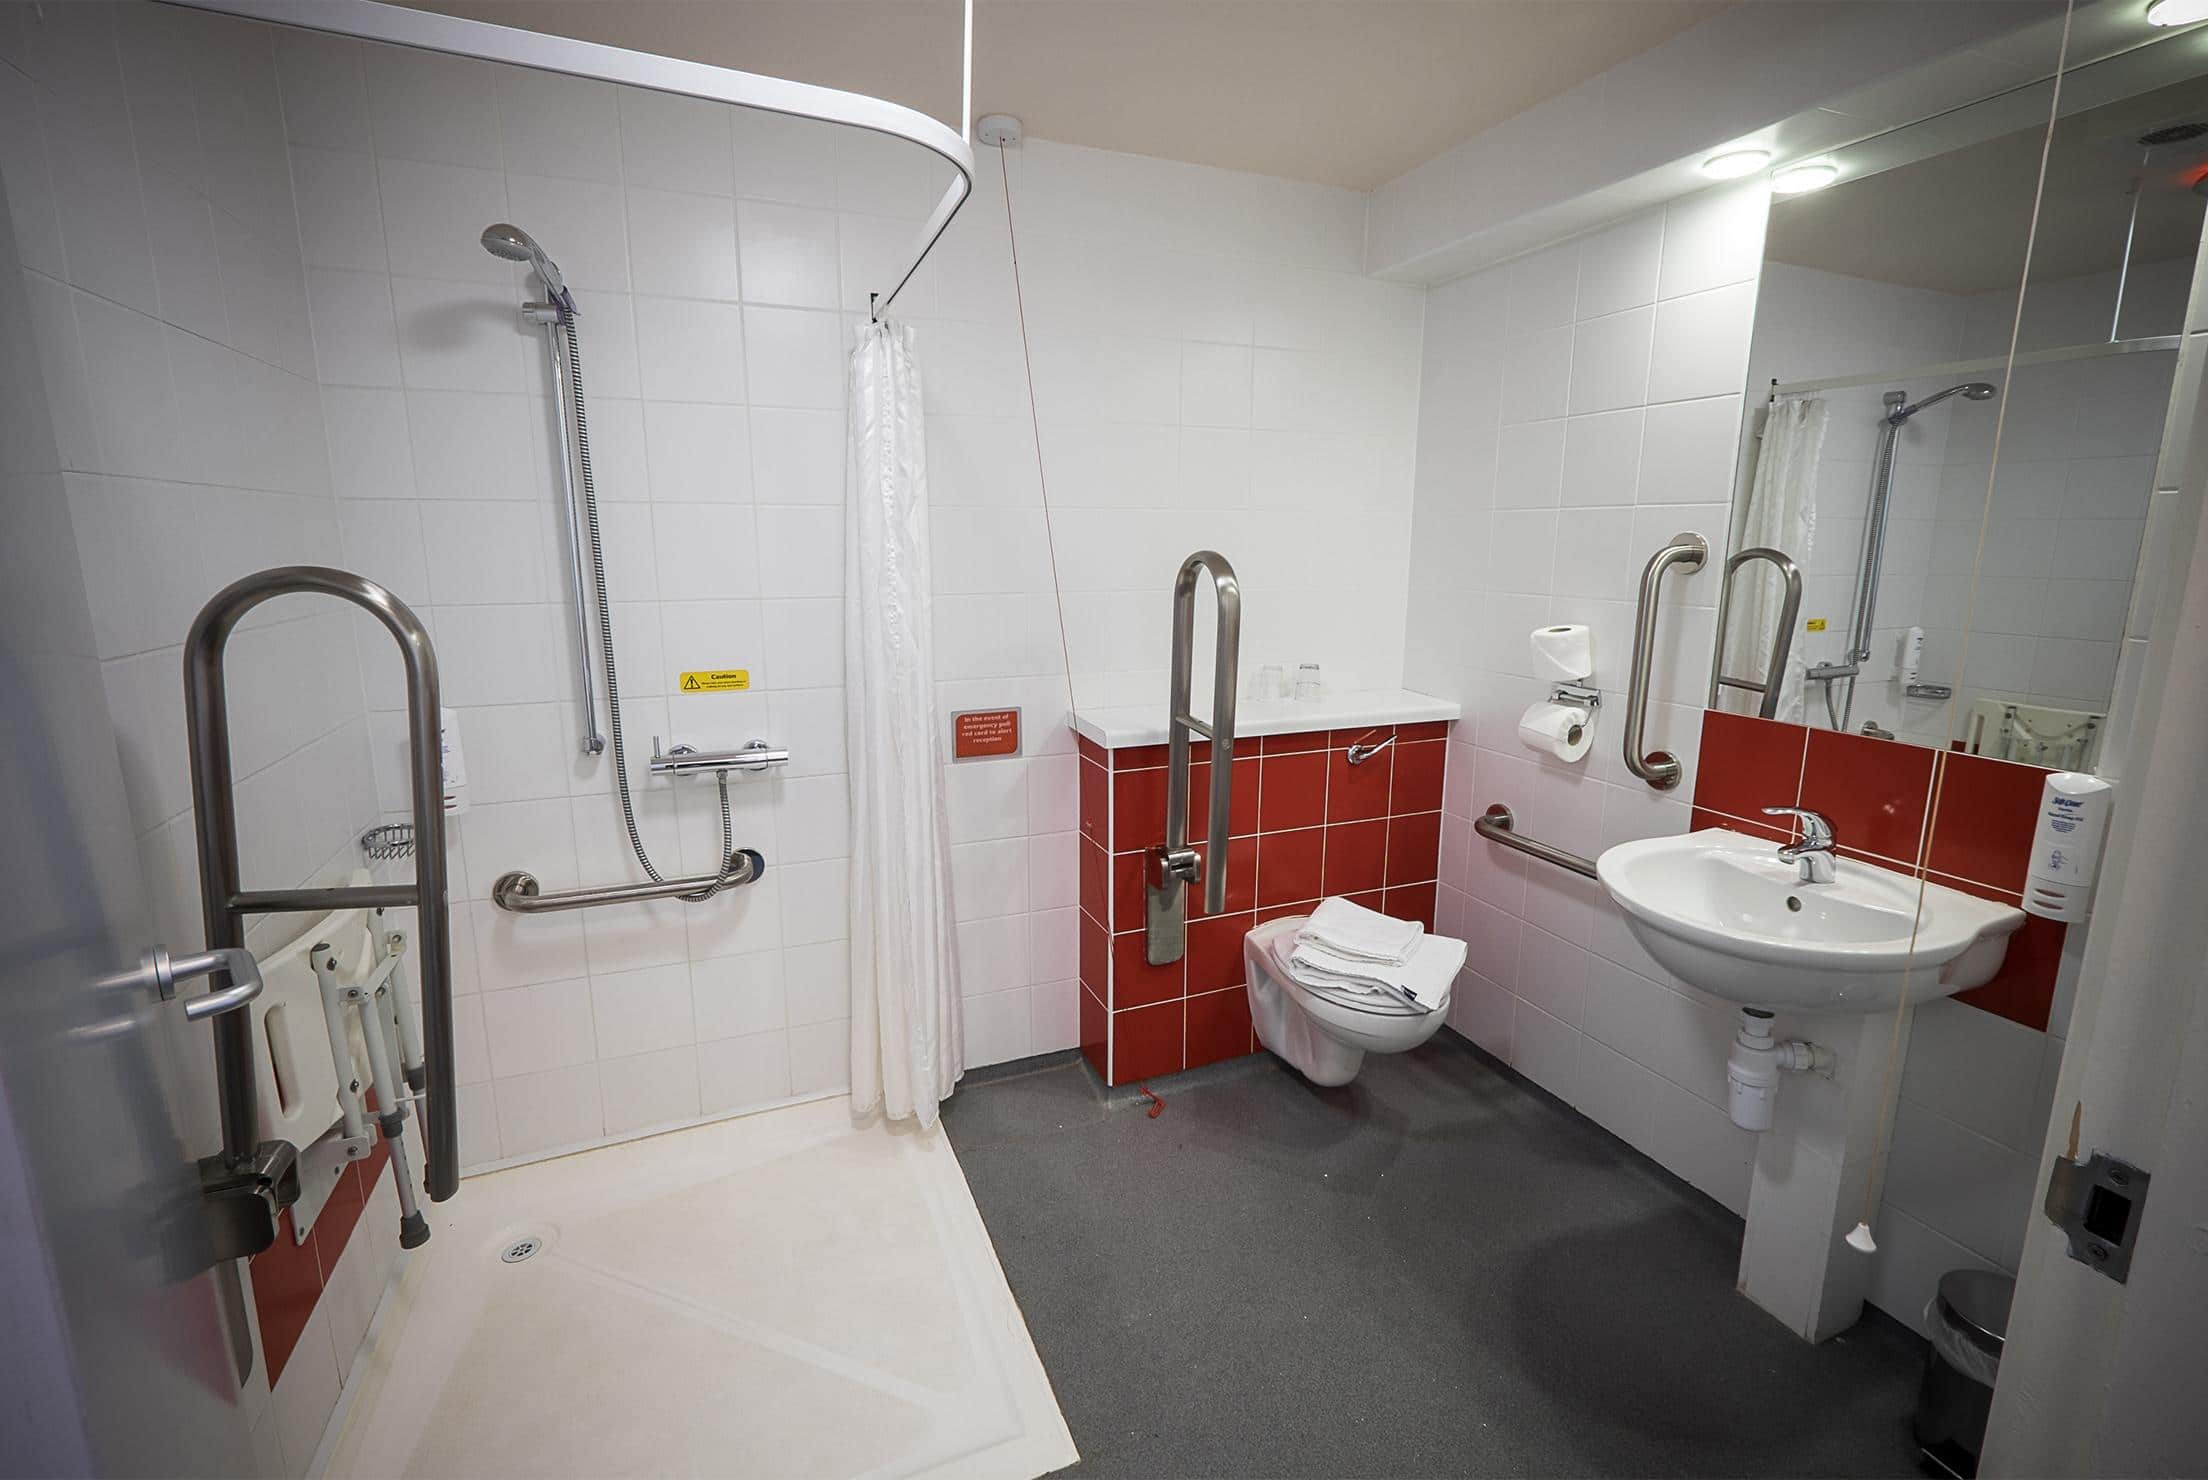 Dublin Airport South Ballymun - Accessible bathroom